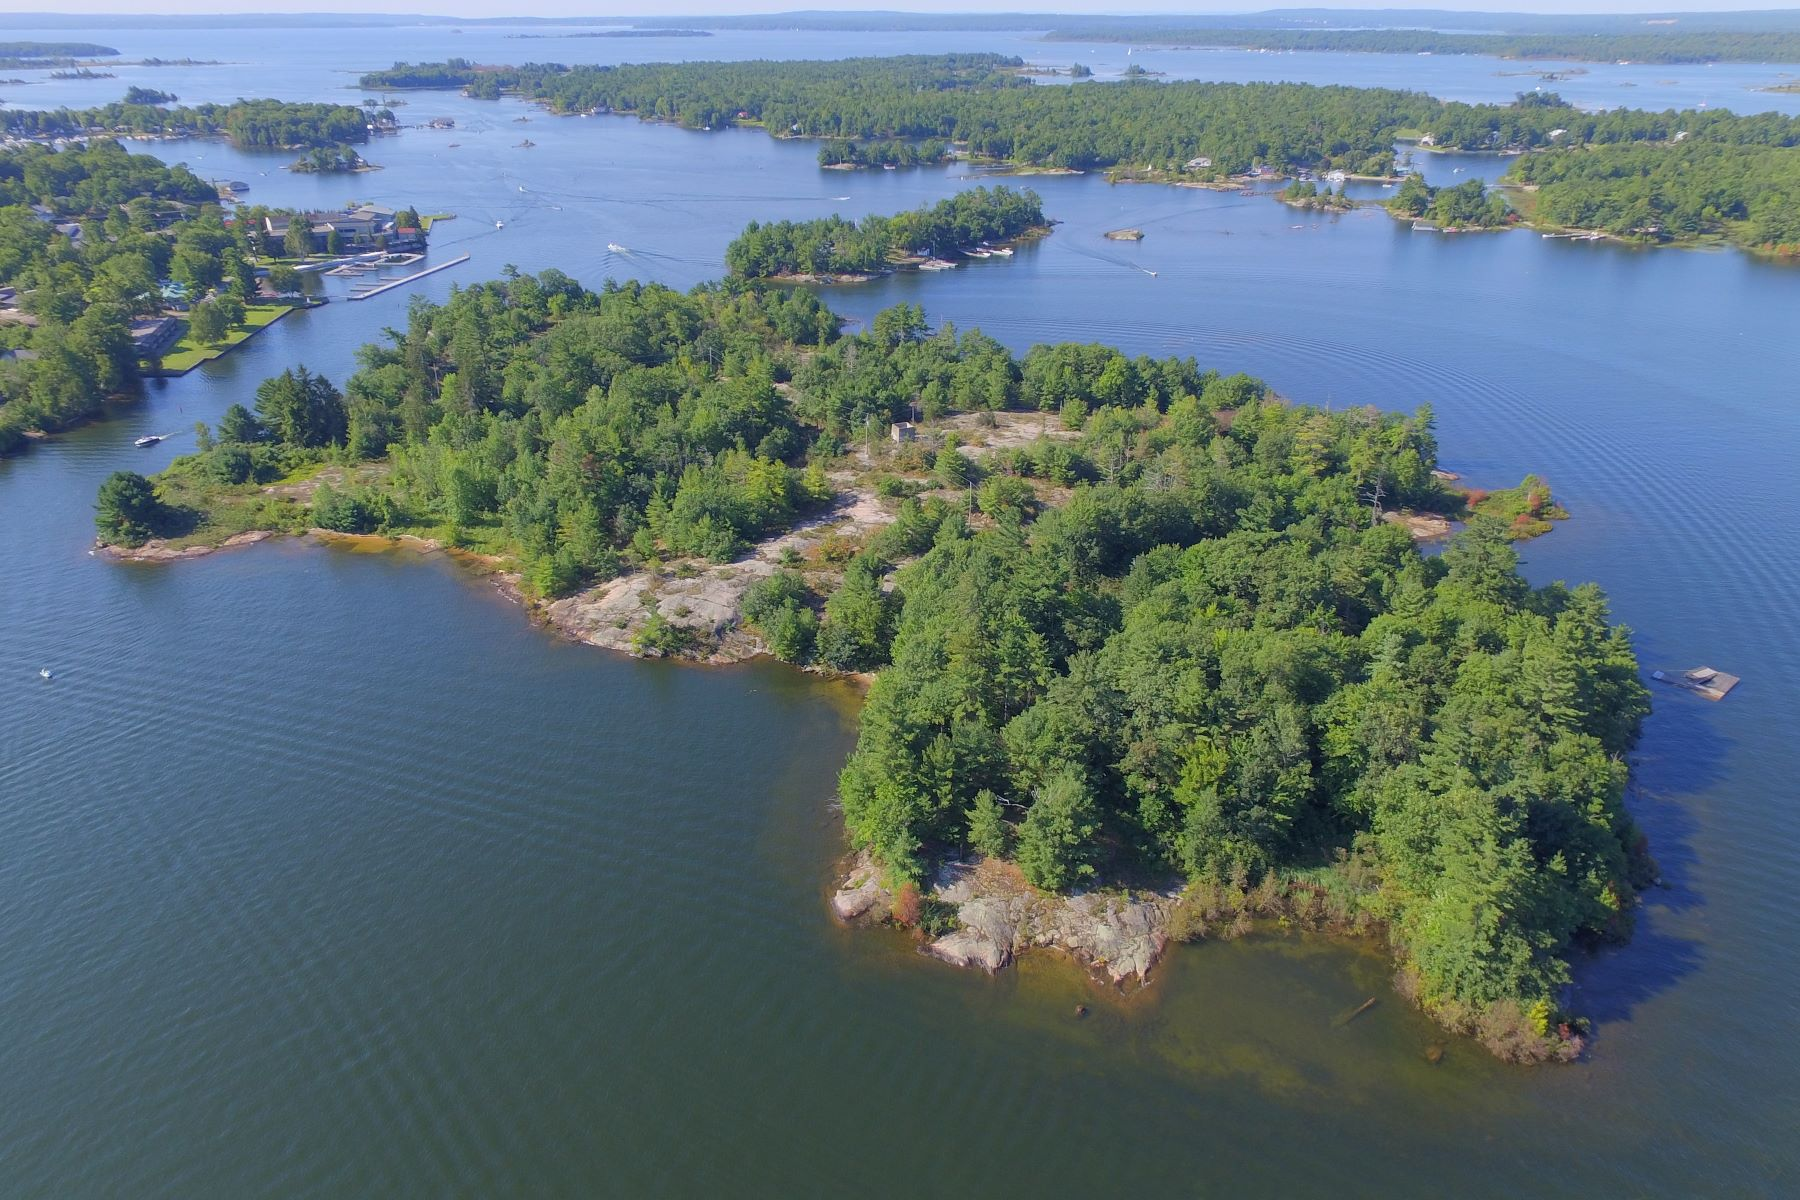 Isola Privata per Vendita alle ore Royal Island Honey Harbour Royal Island 810, Honey Harbour, Ontario, P0E 1E0 Canada